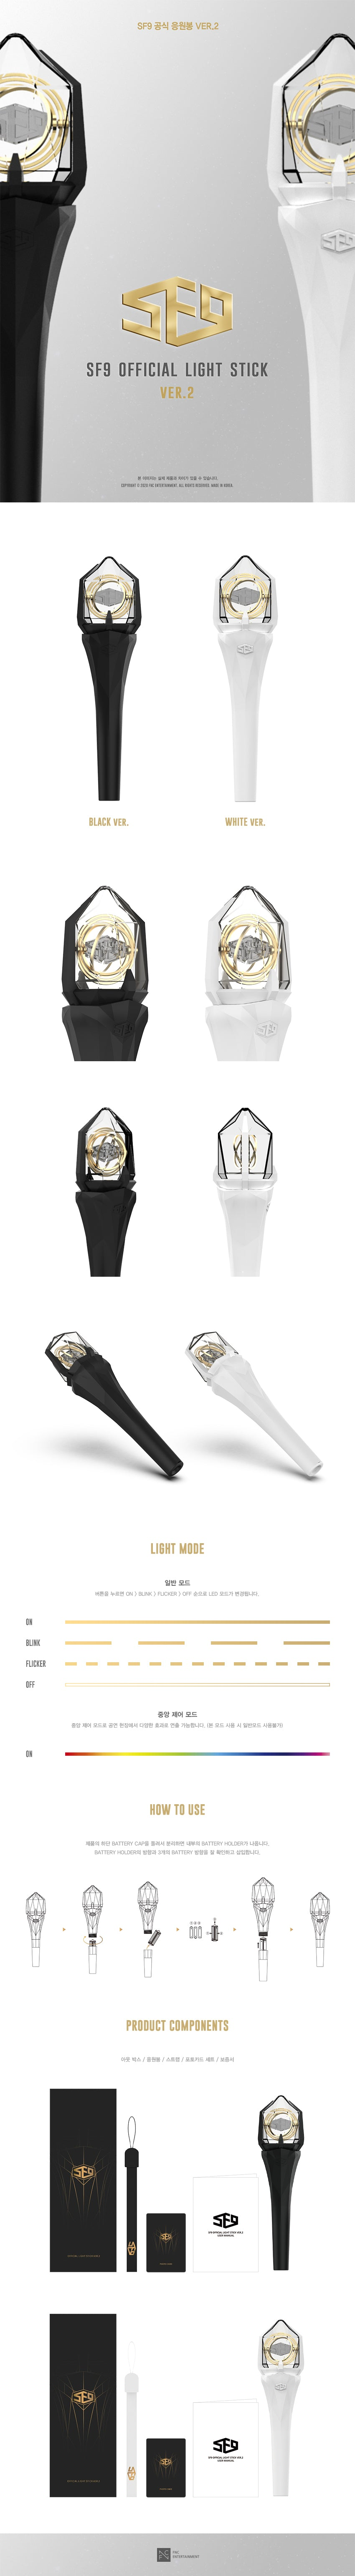 SF9 Official Light Stick Ver.2